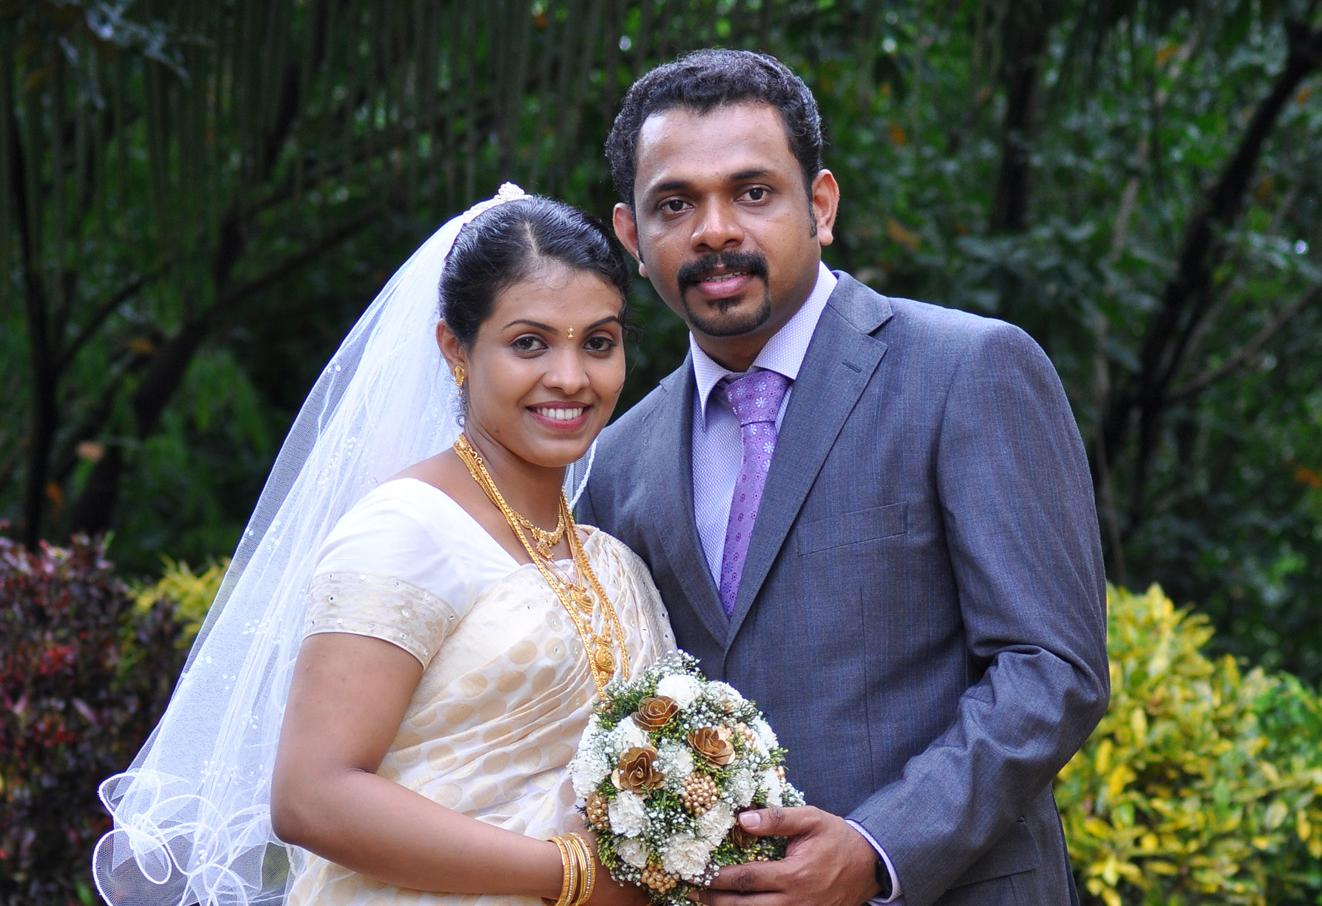 Pradeep and Linta